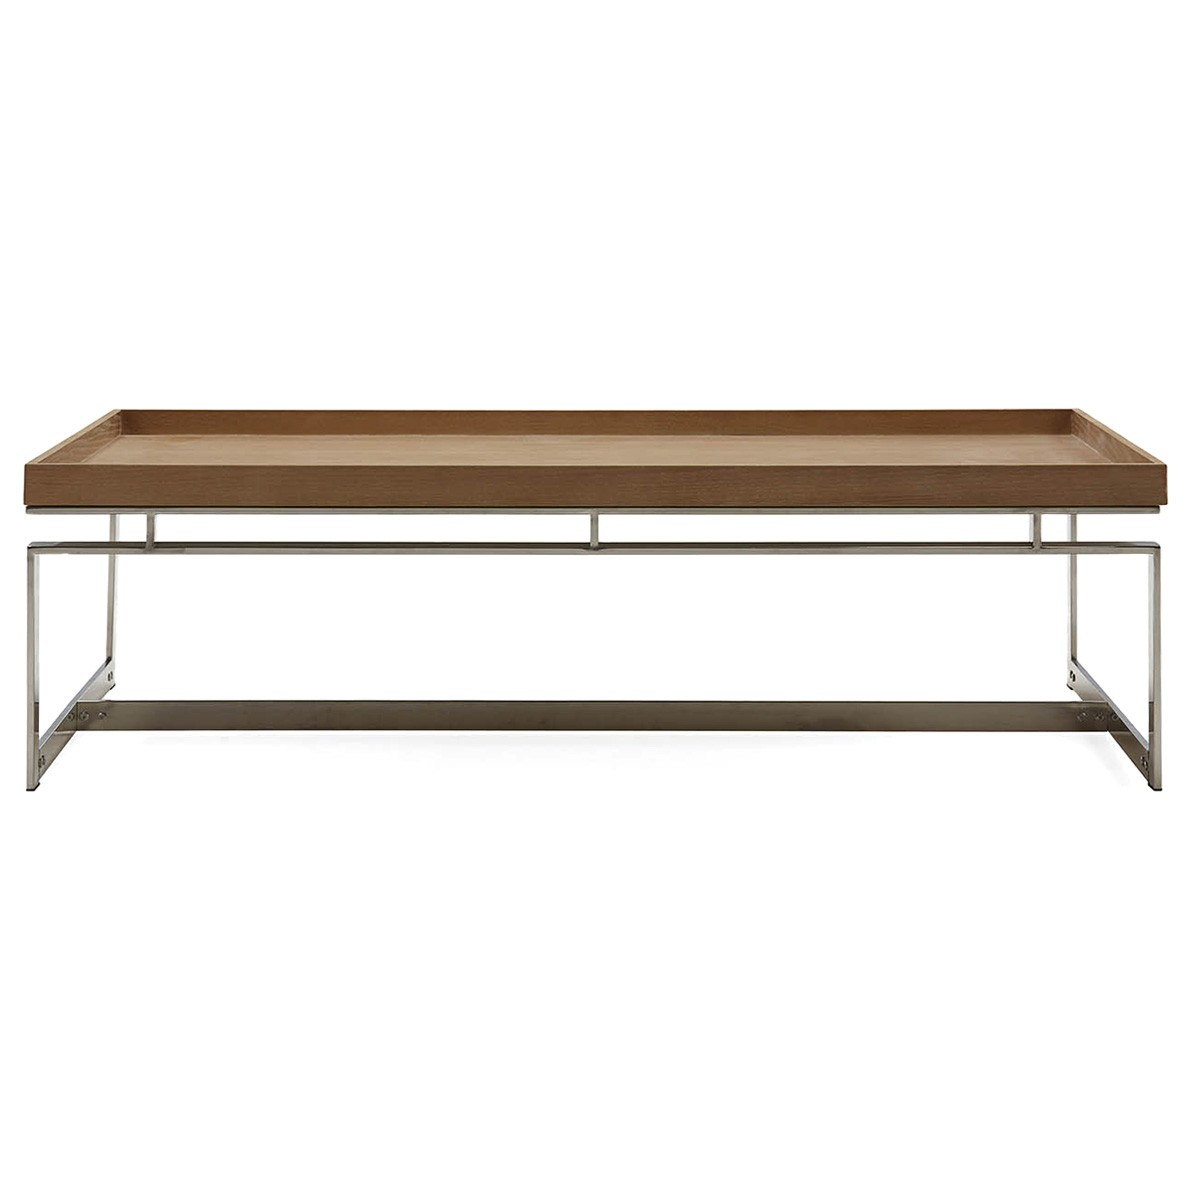 Raijin Tray Top Coffee Table, 140cm